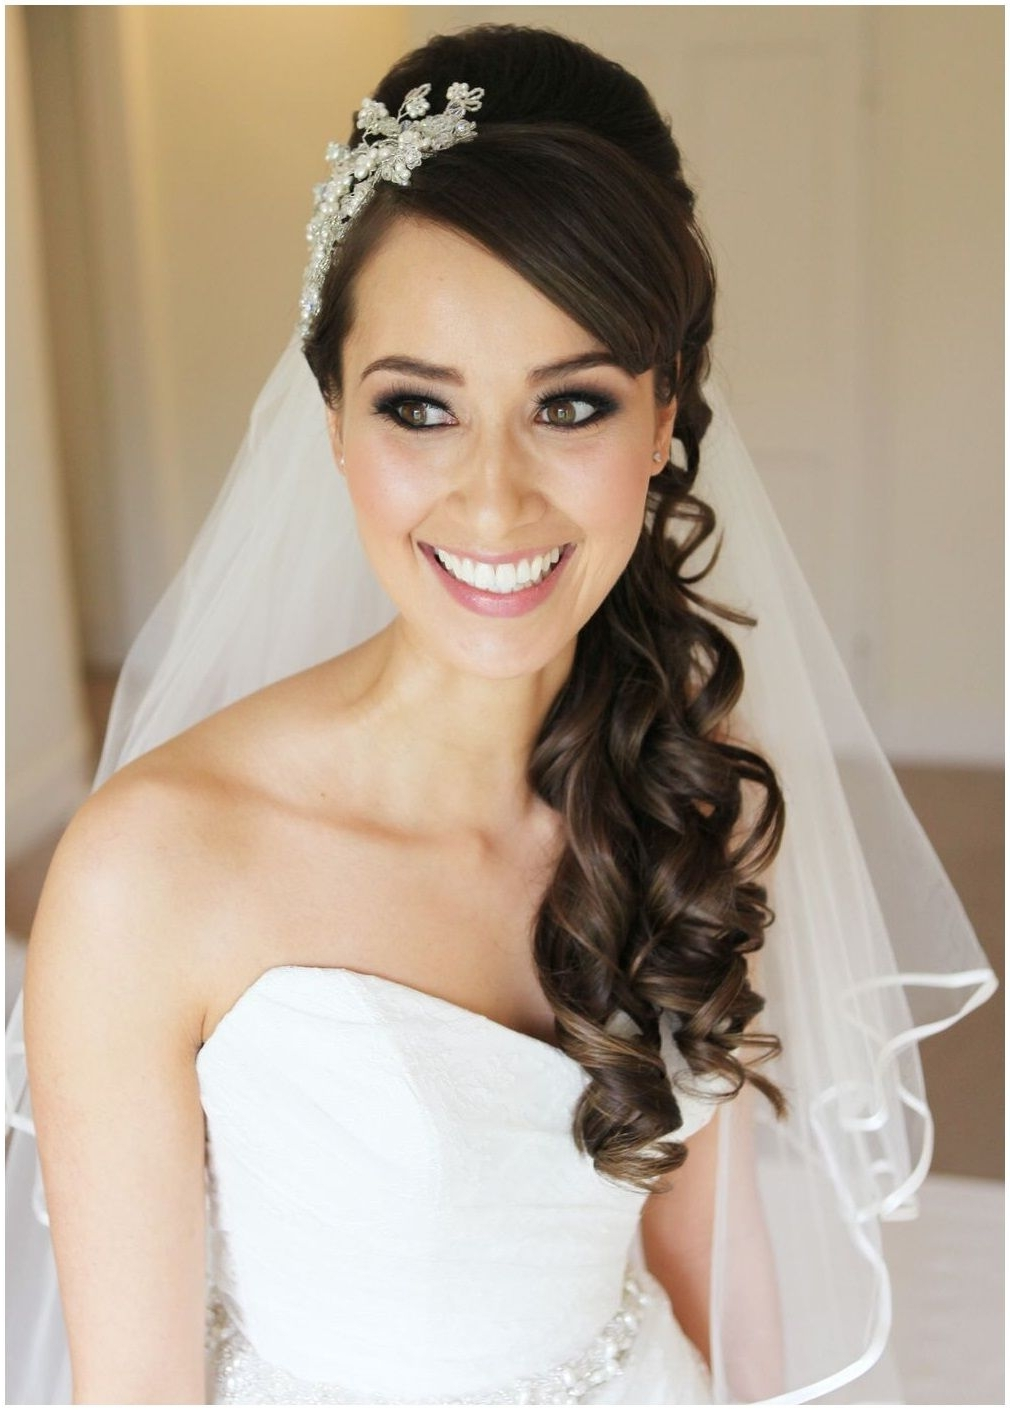 Current Wedding Hairstyles Down With Headband Regarding Wedding Hair Down With Headband And Veil (View 3 of 15)